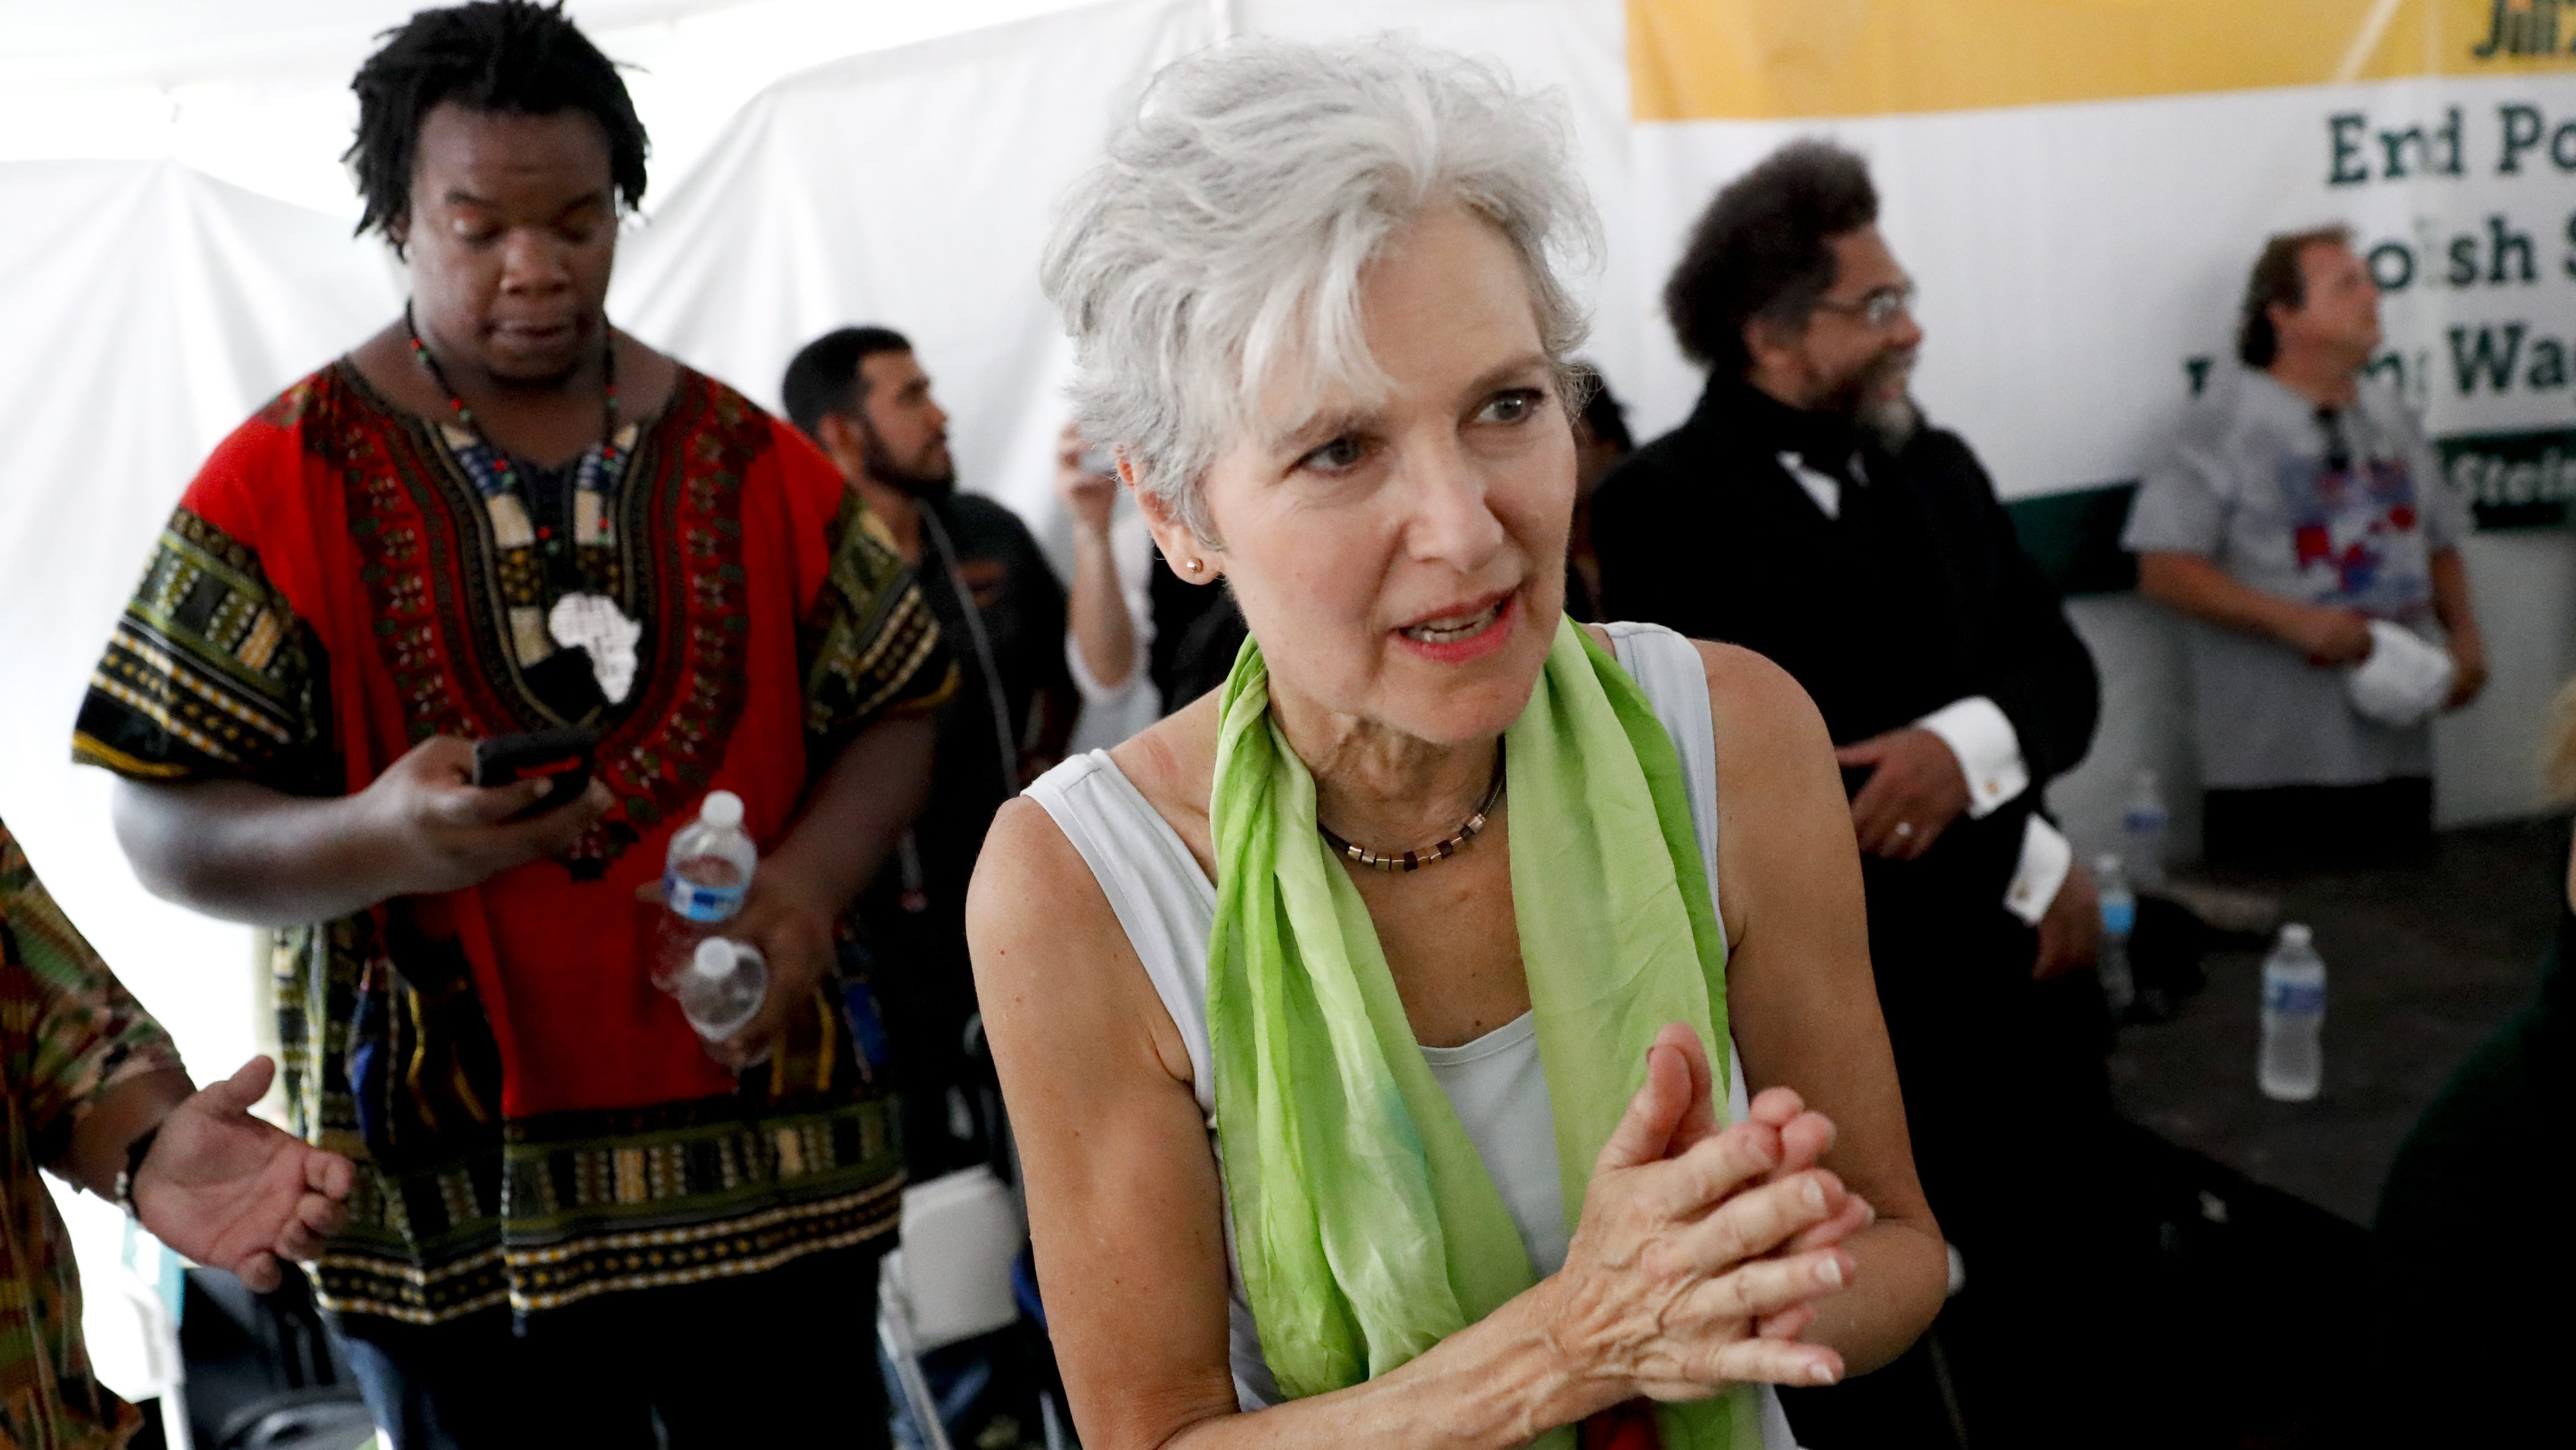 Dr. Jill Stein, presumptive Green Party presidential nominee, arrives for a Power to the People Rally at Franklin Delano Roosevelt Park, Monday, July 25, 2016, in Philadelphia, during the first day of the Democratic National Convention. (AP Photo/John Minchillo)